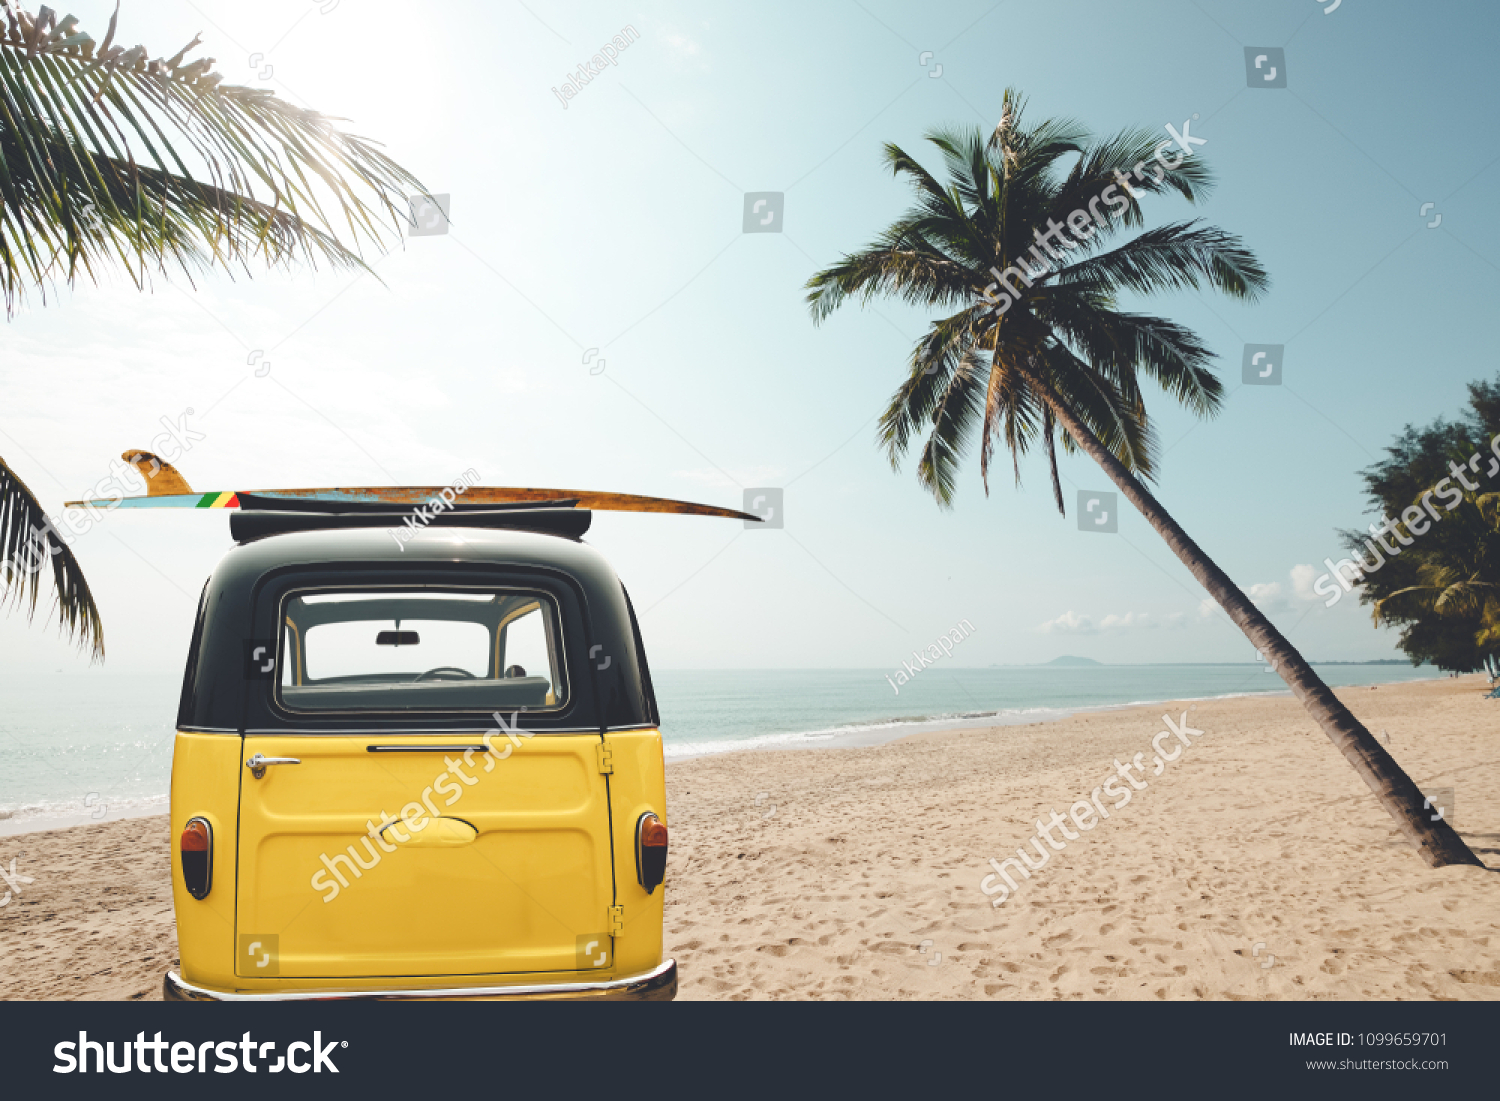 Rear of vintage car parked on the tropical beach (seaside) with a surfboard on the roof - Leisure trip in the summer. retro color effect #1099659701